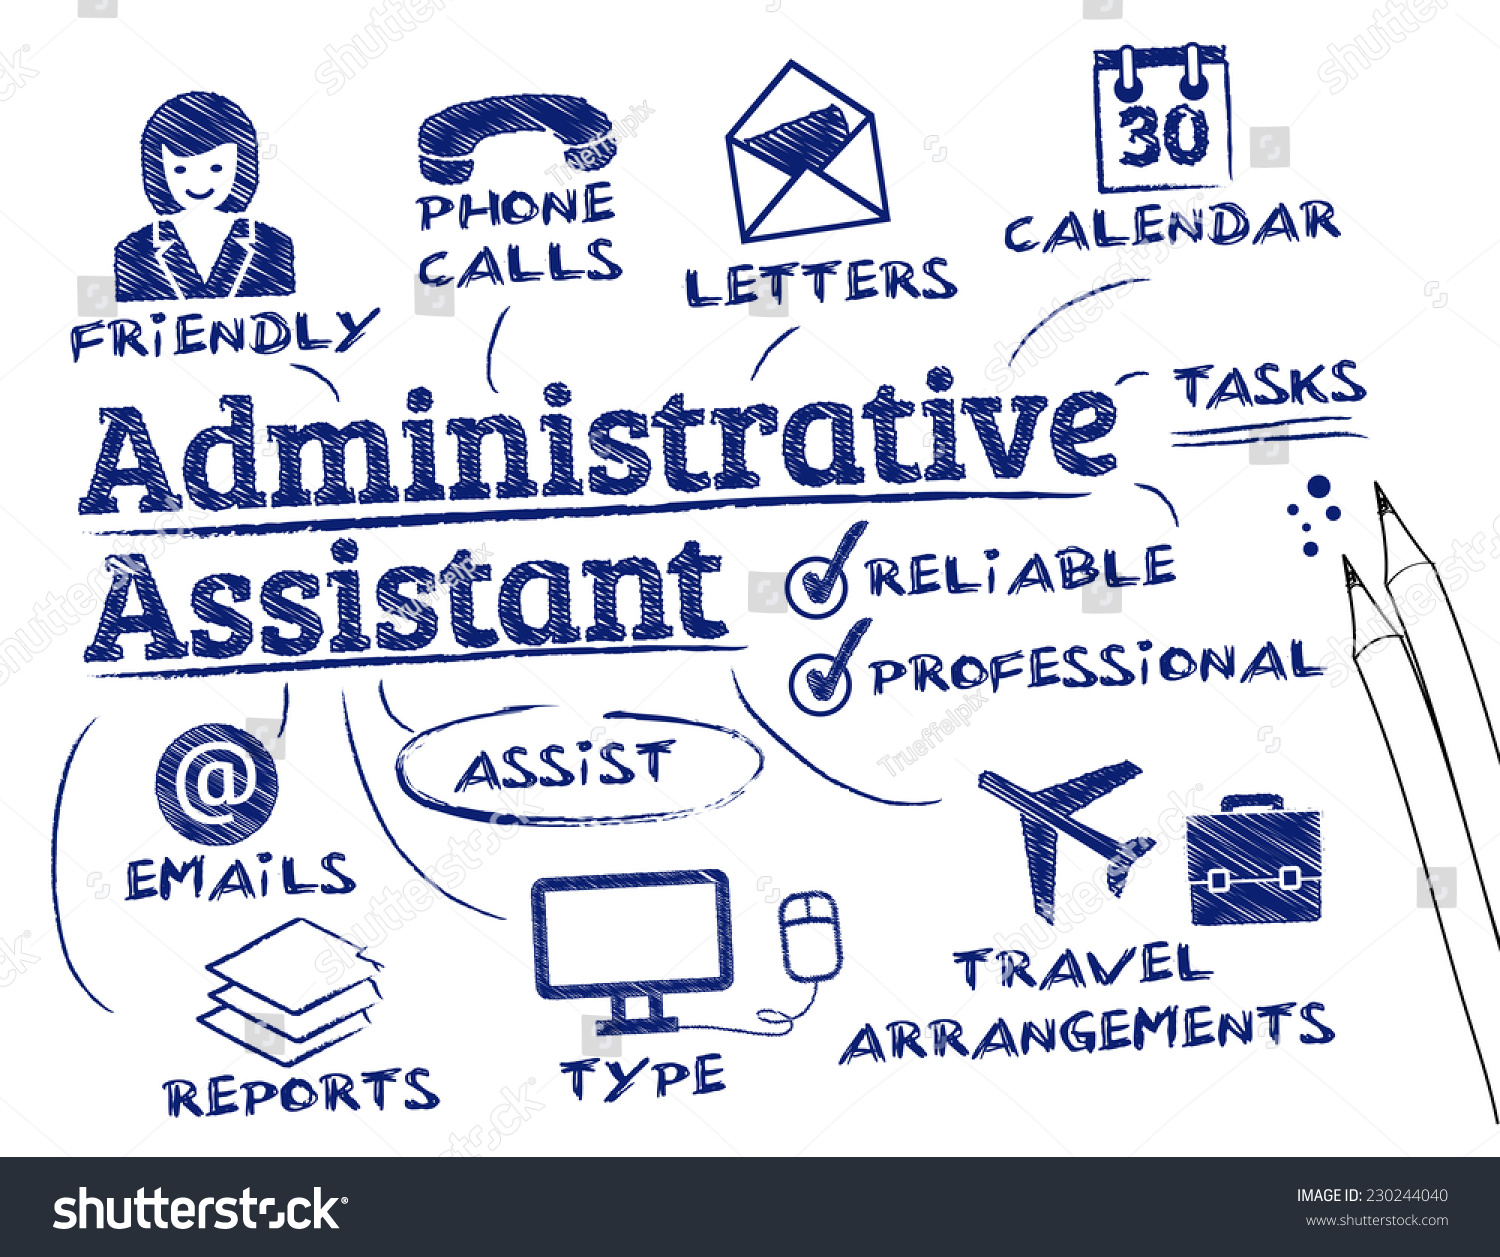 administrative assistant chart keywords icons stock vector administrative assistant chart keywords and icons